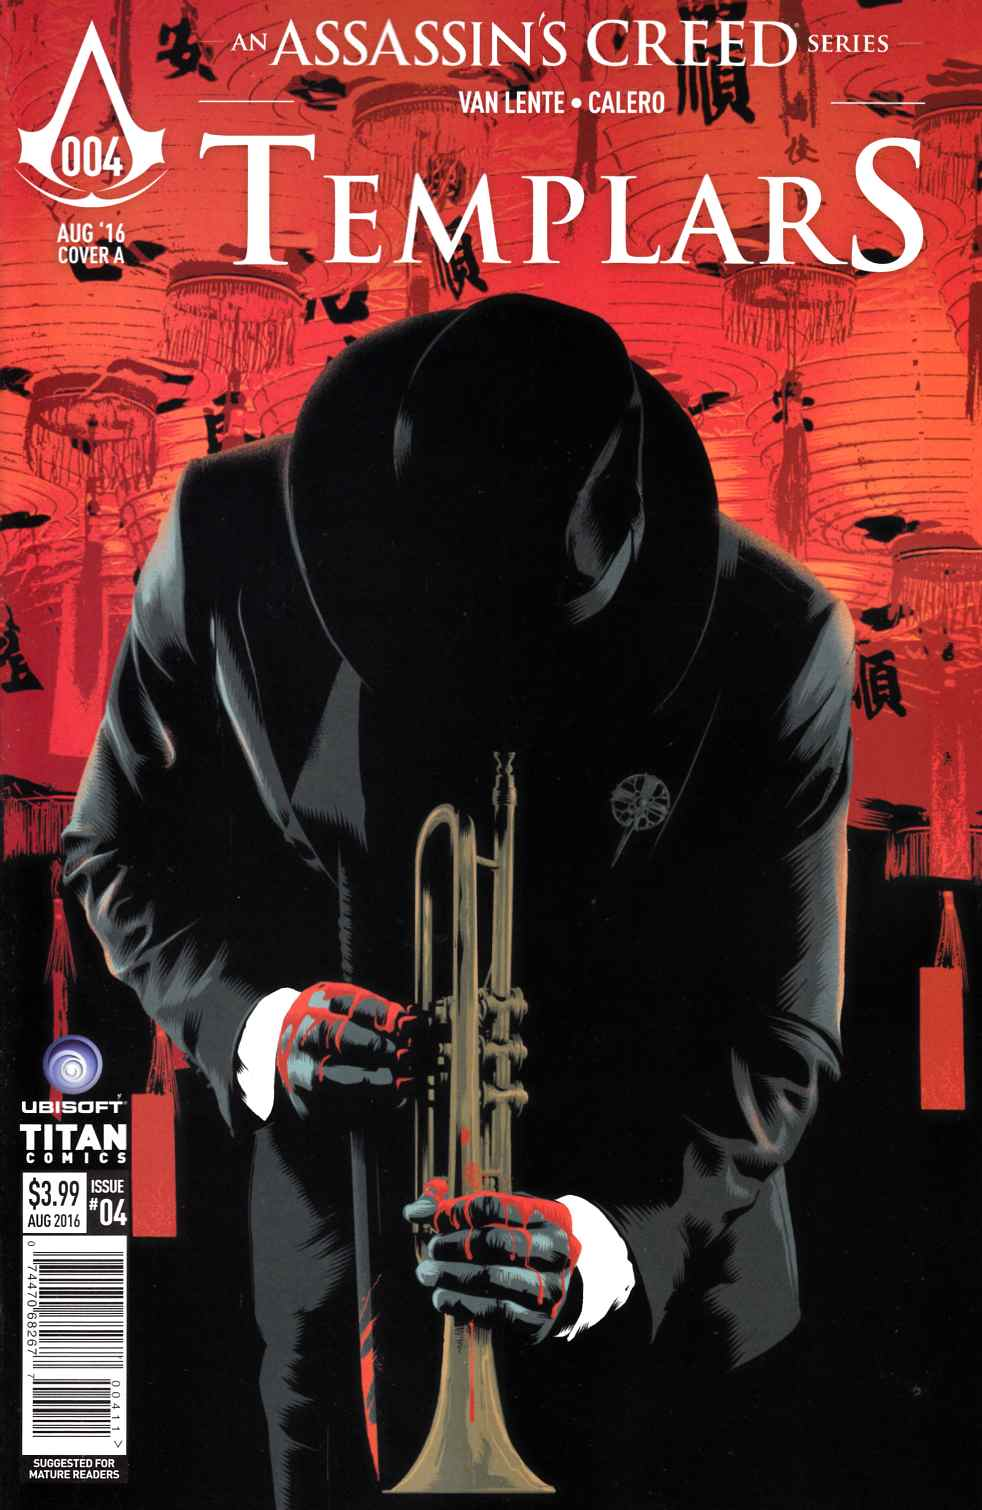 Assassins Creed Templars #4 Cover A [Titan Comic]